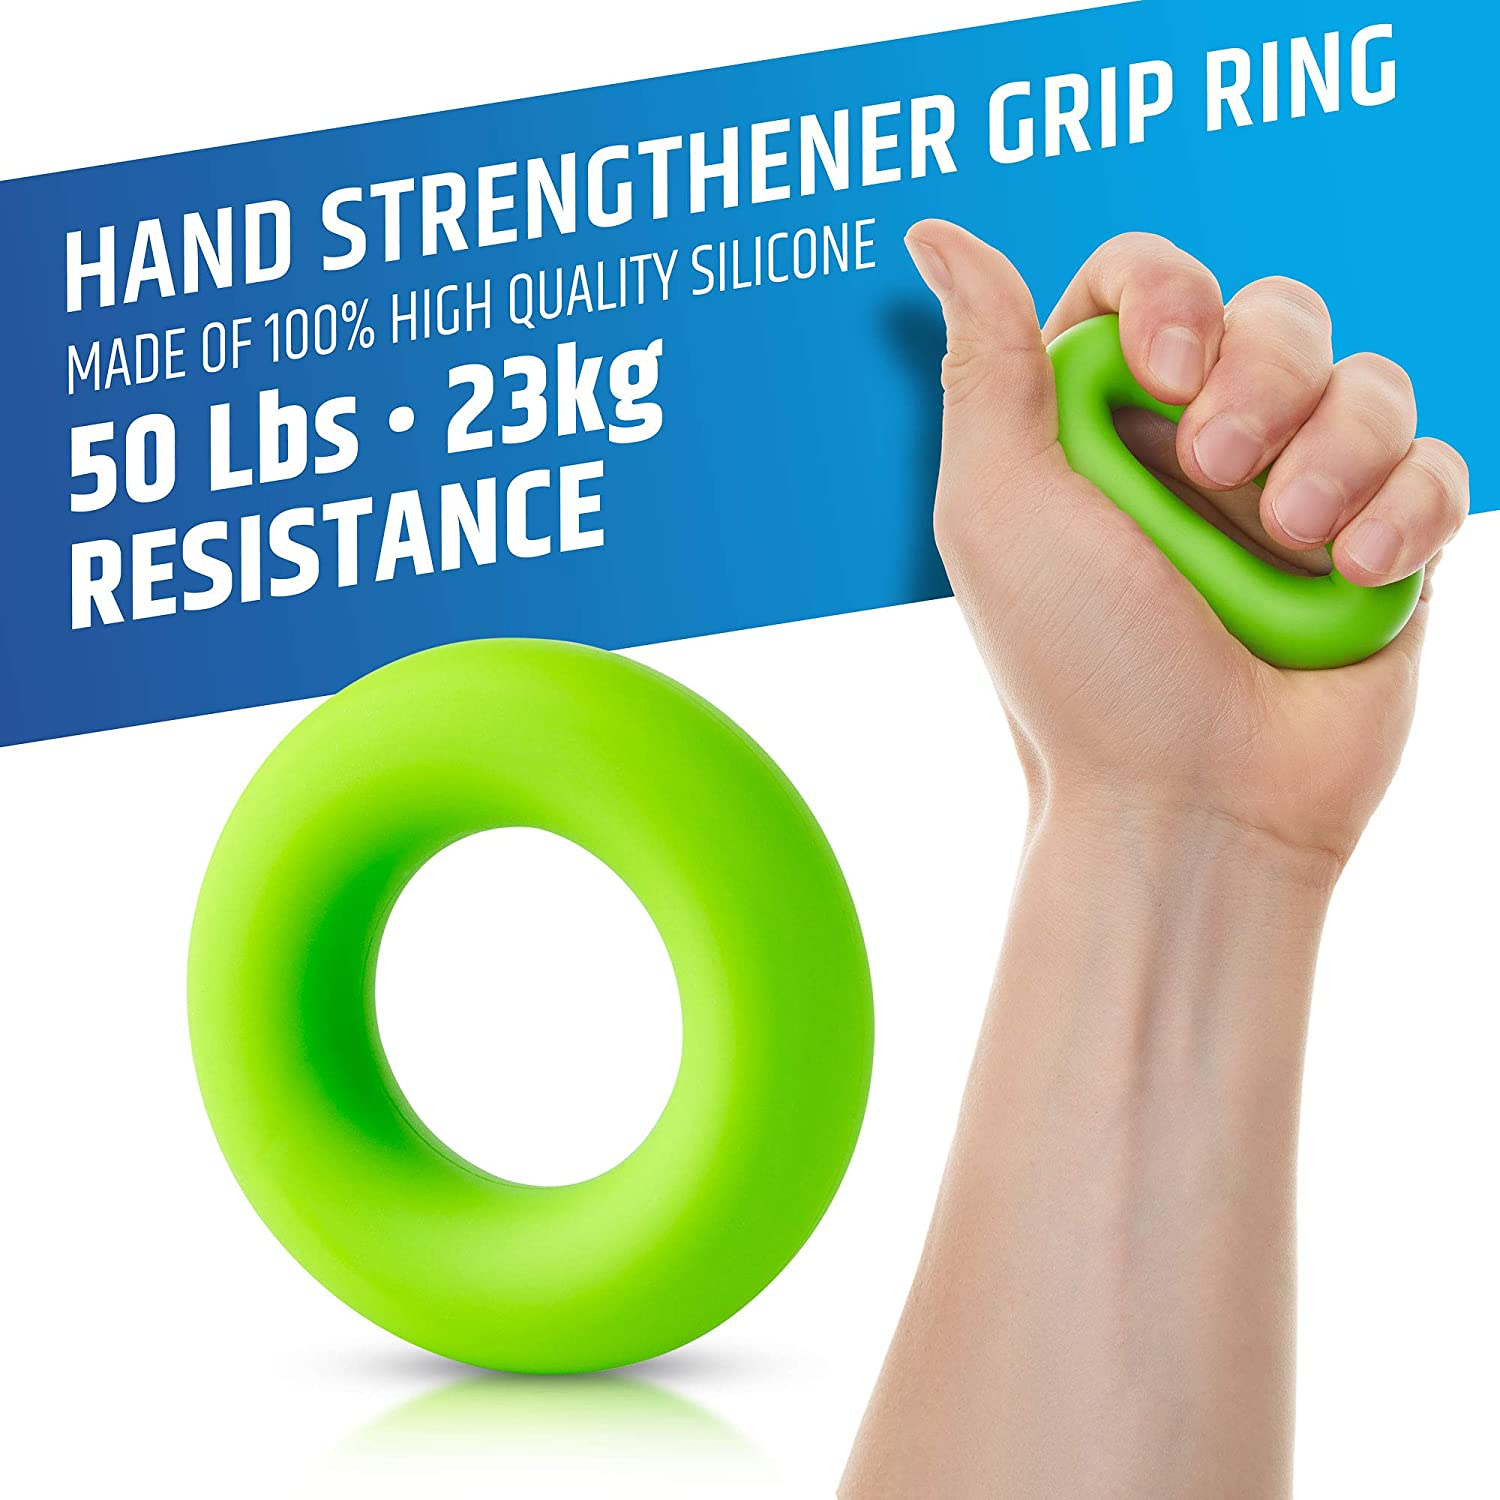 B01KLREWDM HerculesGrip Hand Grip Strengthener Forearm Grip Workout Kit - 4 Pack - Adjustable Hand Gripper Resistance Range of 22-88lbs, Finger Exerciser, Finger Stretcher & Exercise Ring + HD Video Manual 81-9zuLclVL